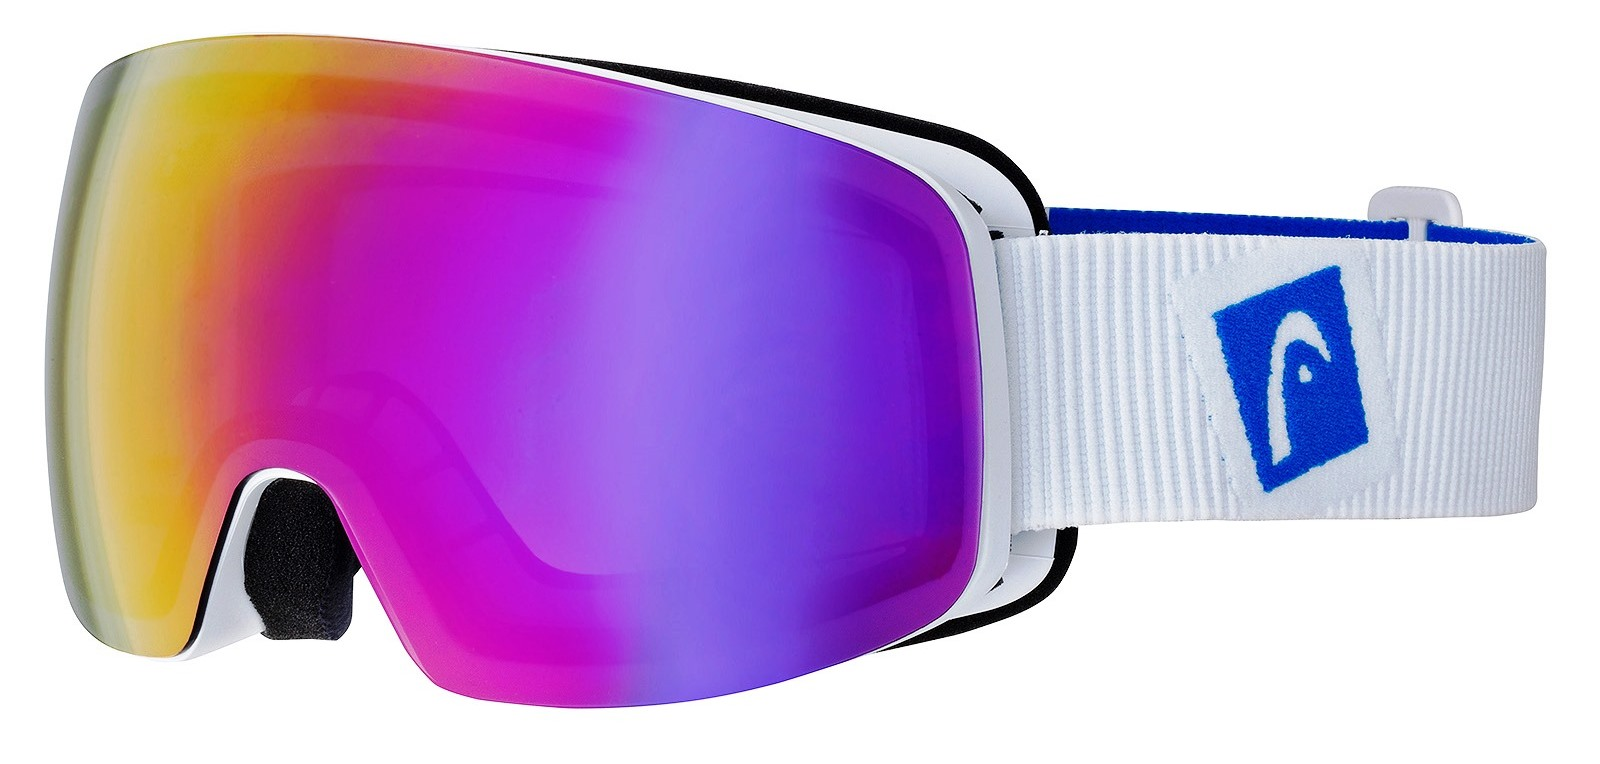 Head GALACTIC FMR white/pink